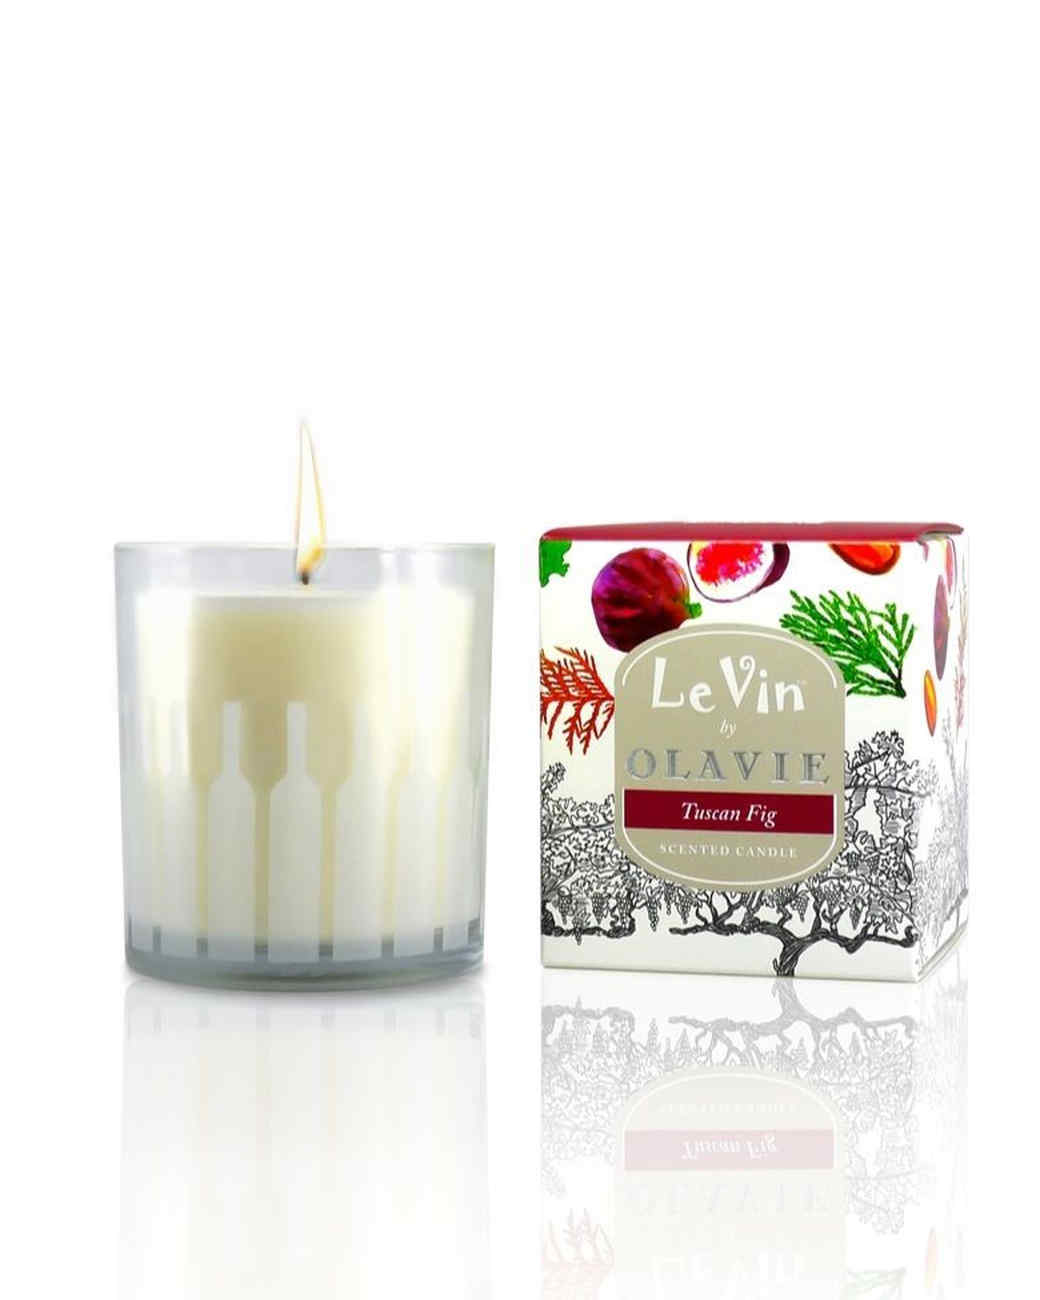 olavie-le-vin-tuscan-fig-scented-candle-1014.jpg